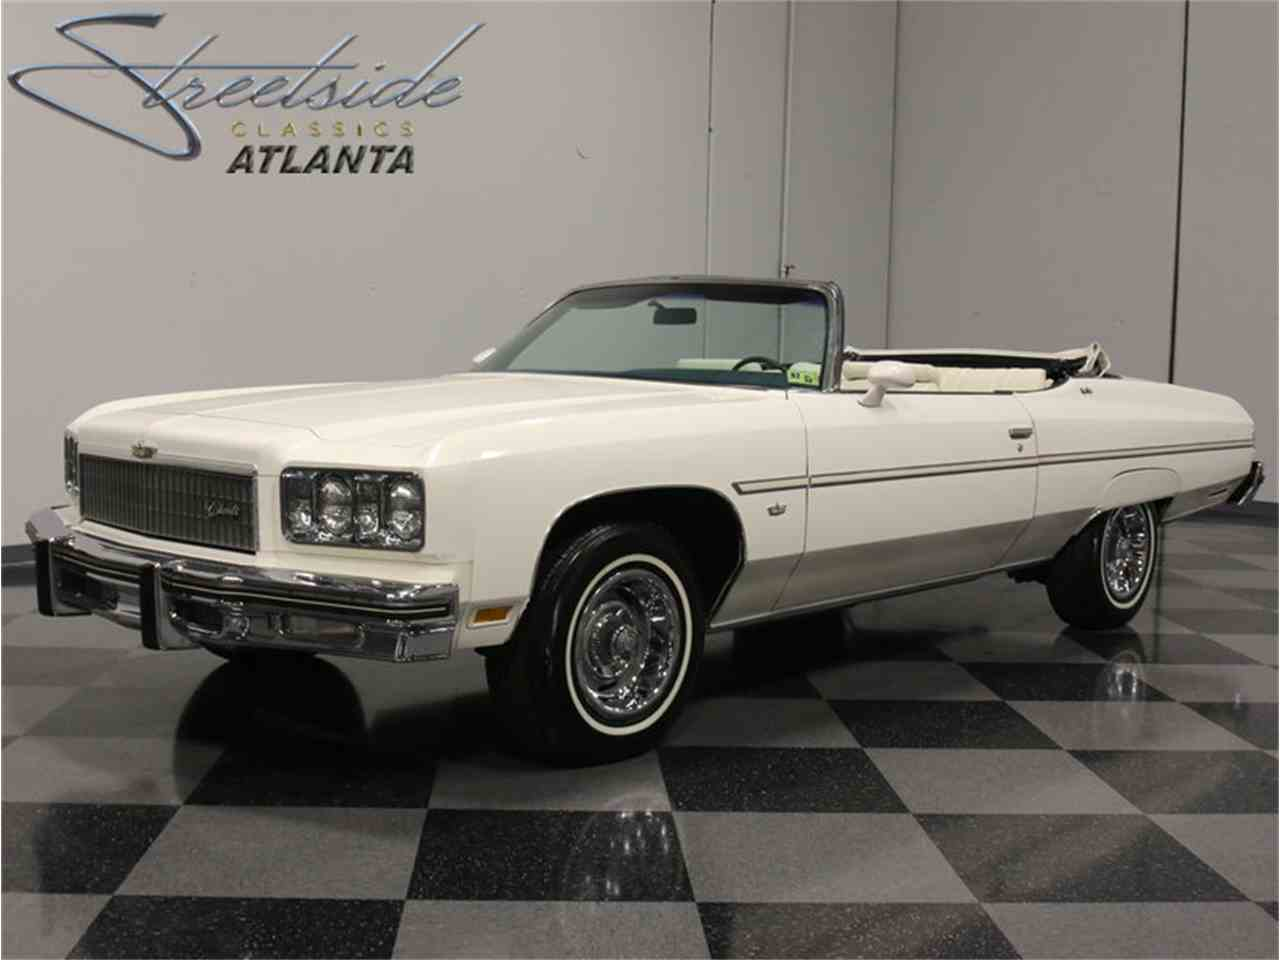 1974 to 1976 Chevrolet Caprice for Sale on ClassicCars.com